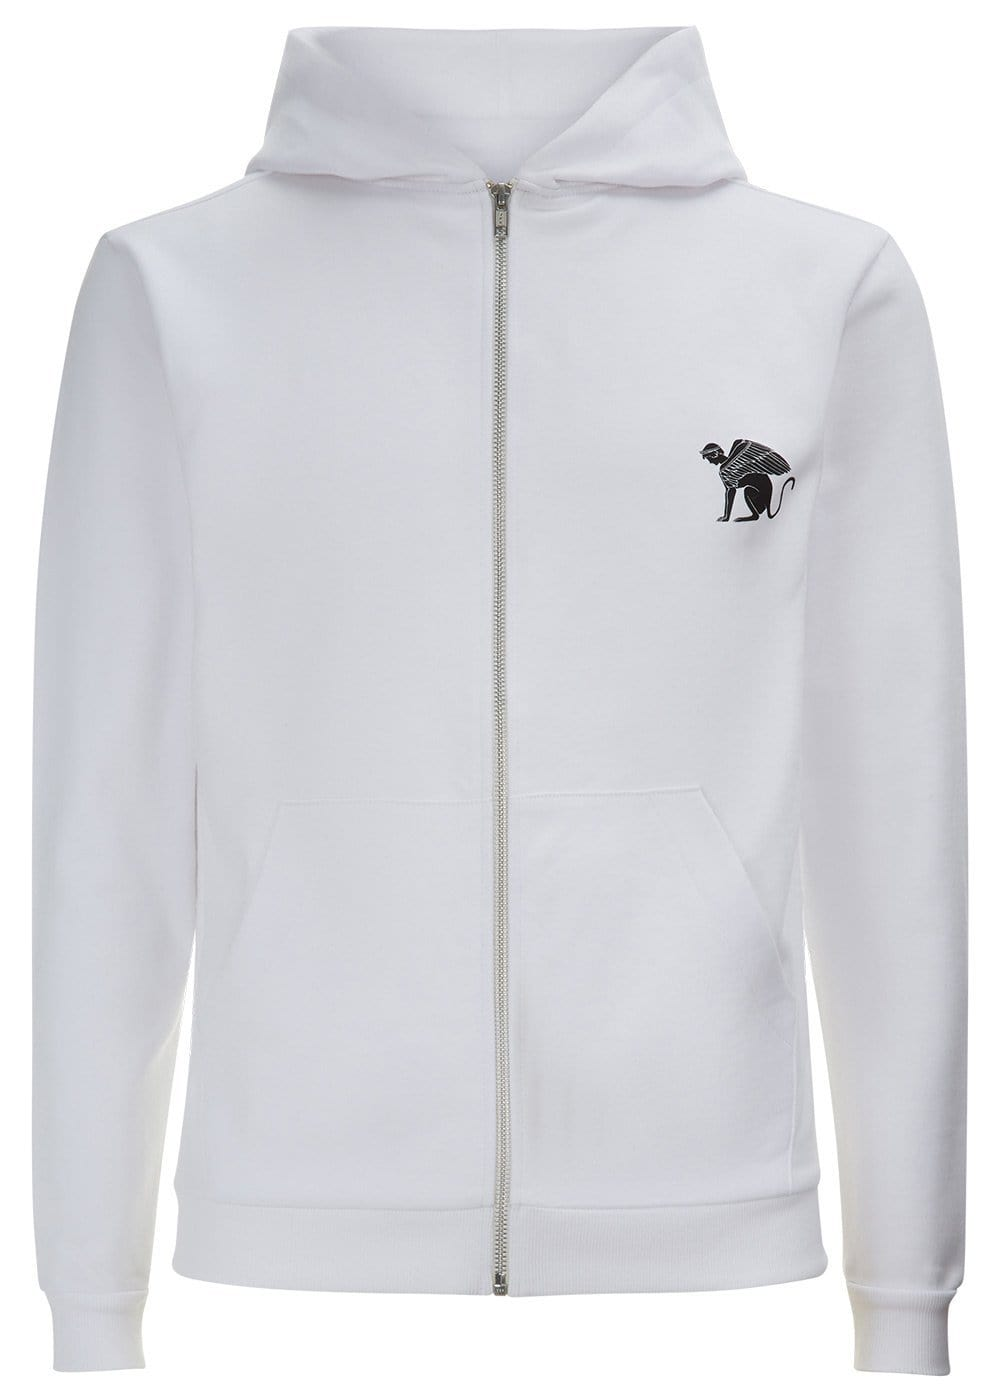 Teenzshop Youth Boys White Zip-Up Toro Hoodie